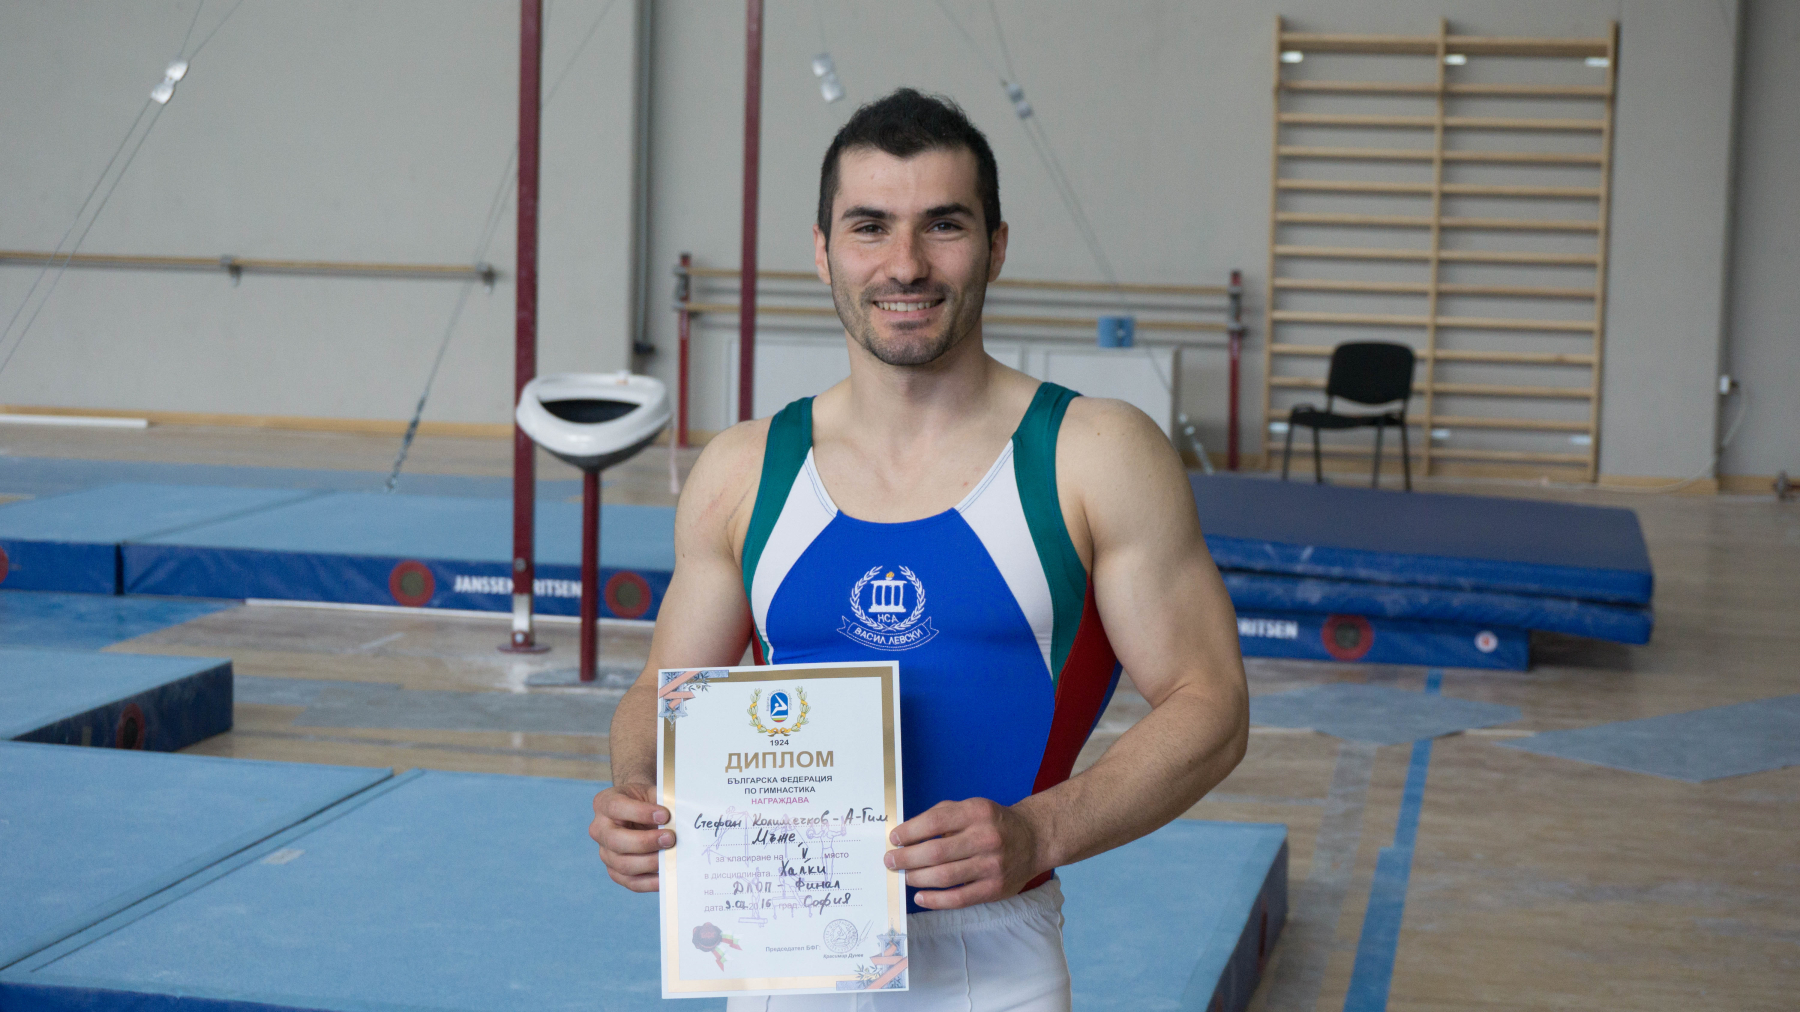 STEFAN KOLIMECHKOV - MEN'S RINGS FINAL at the 2016 NATIONAL CHAMPIONSHIPS